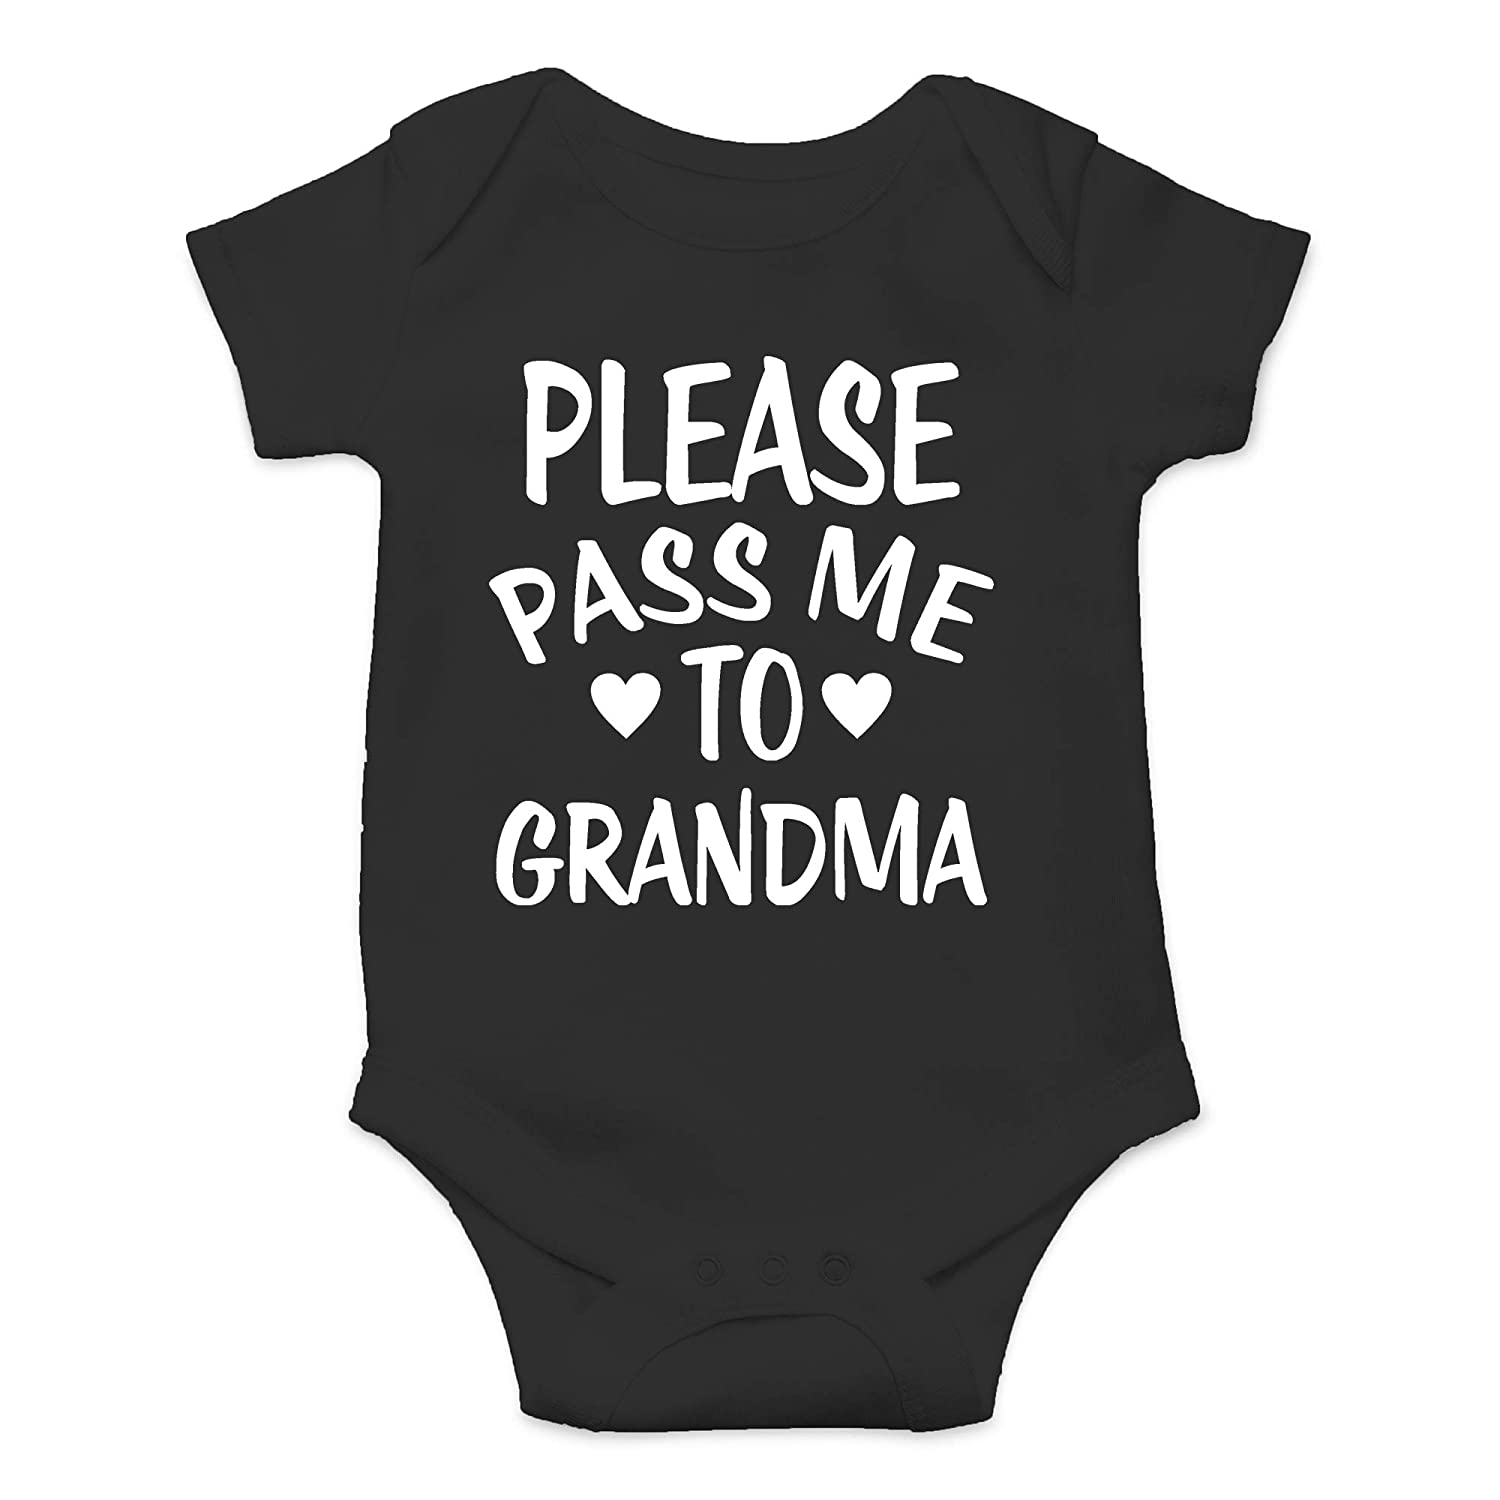 e0ab46892be Amazon.com  CBTwear Please Pass Me to Grandma - My Grandmother Loves Me - Cute  Infant One-Piece Baby Bodysuit  Clothing